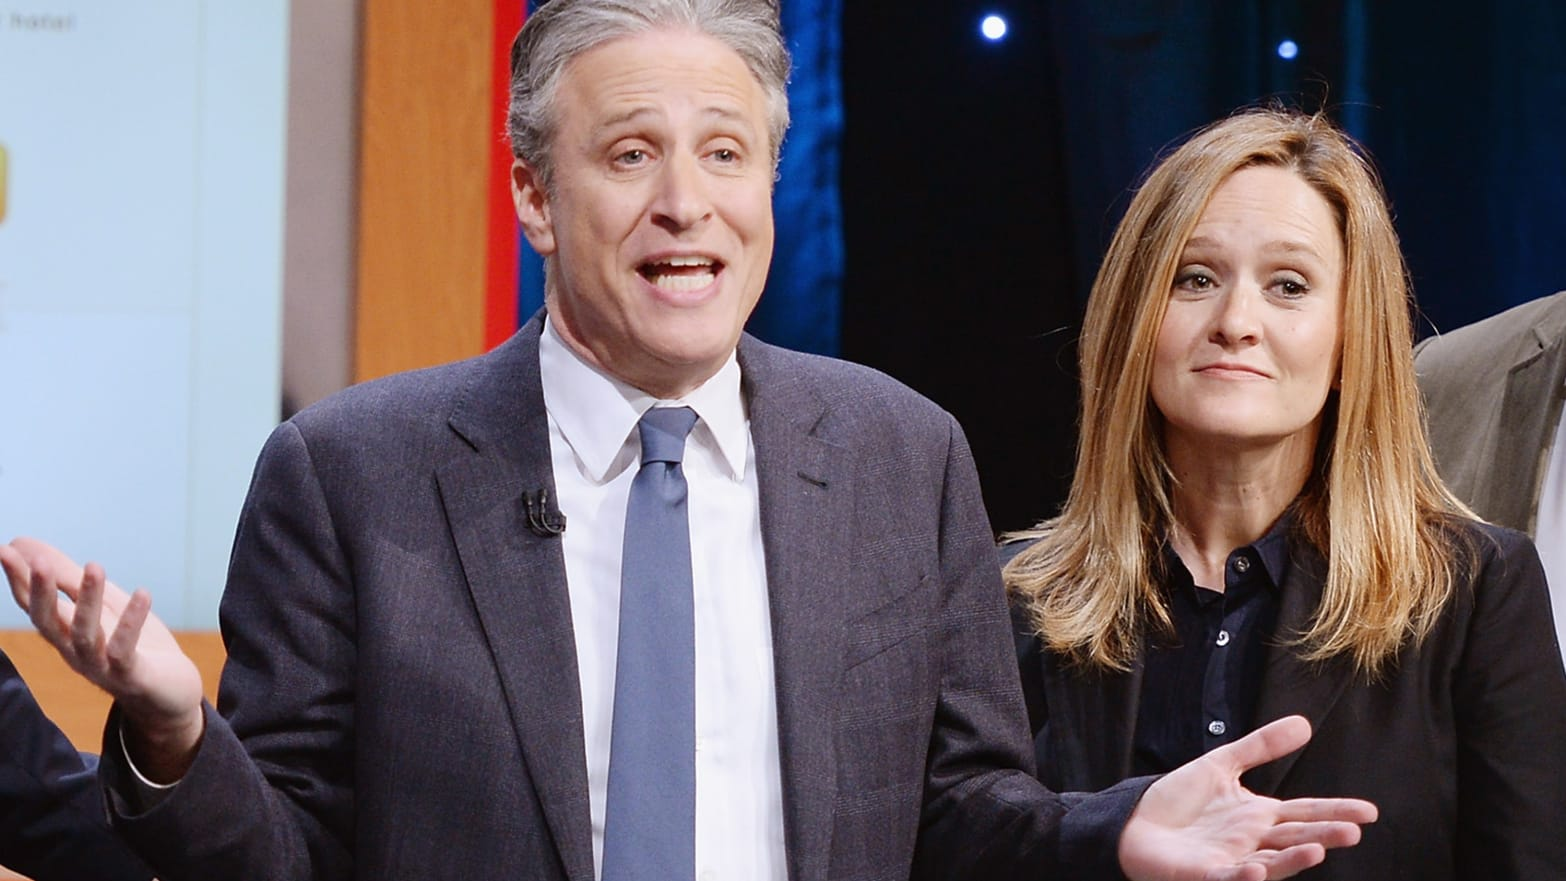 Samantha Bee Reveals She Was 'Never in Contention' to Replace Jon Stewart on 'The Daily Show': 'It Was Awful'